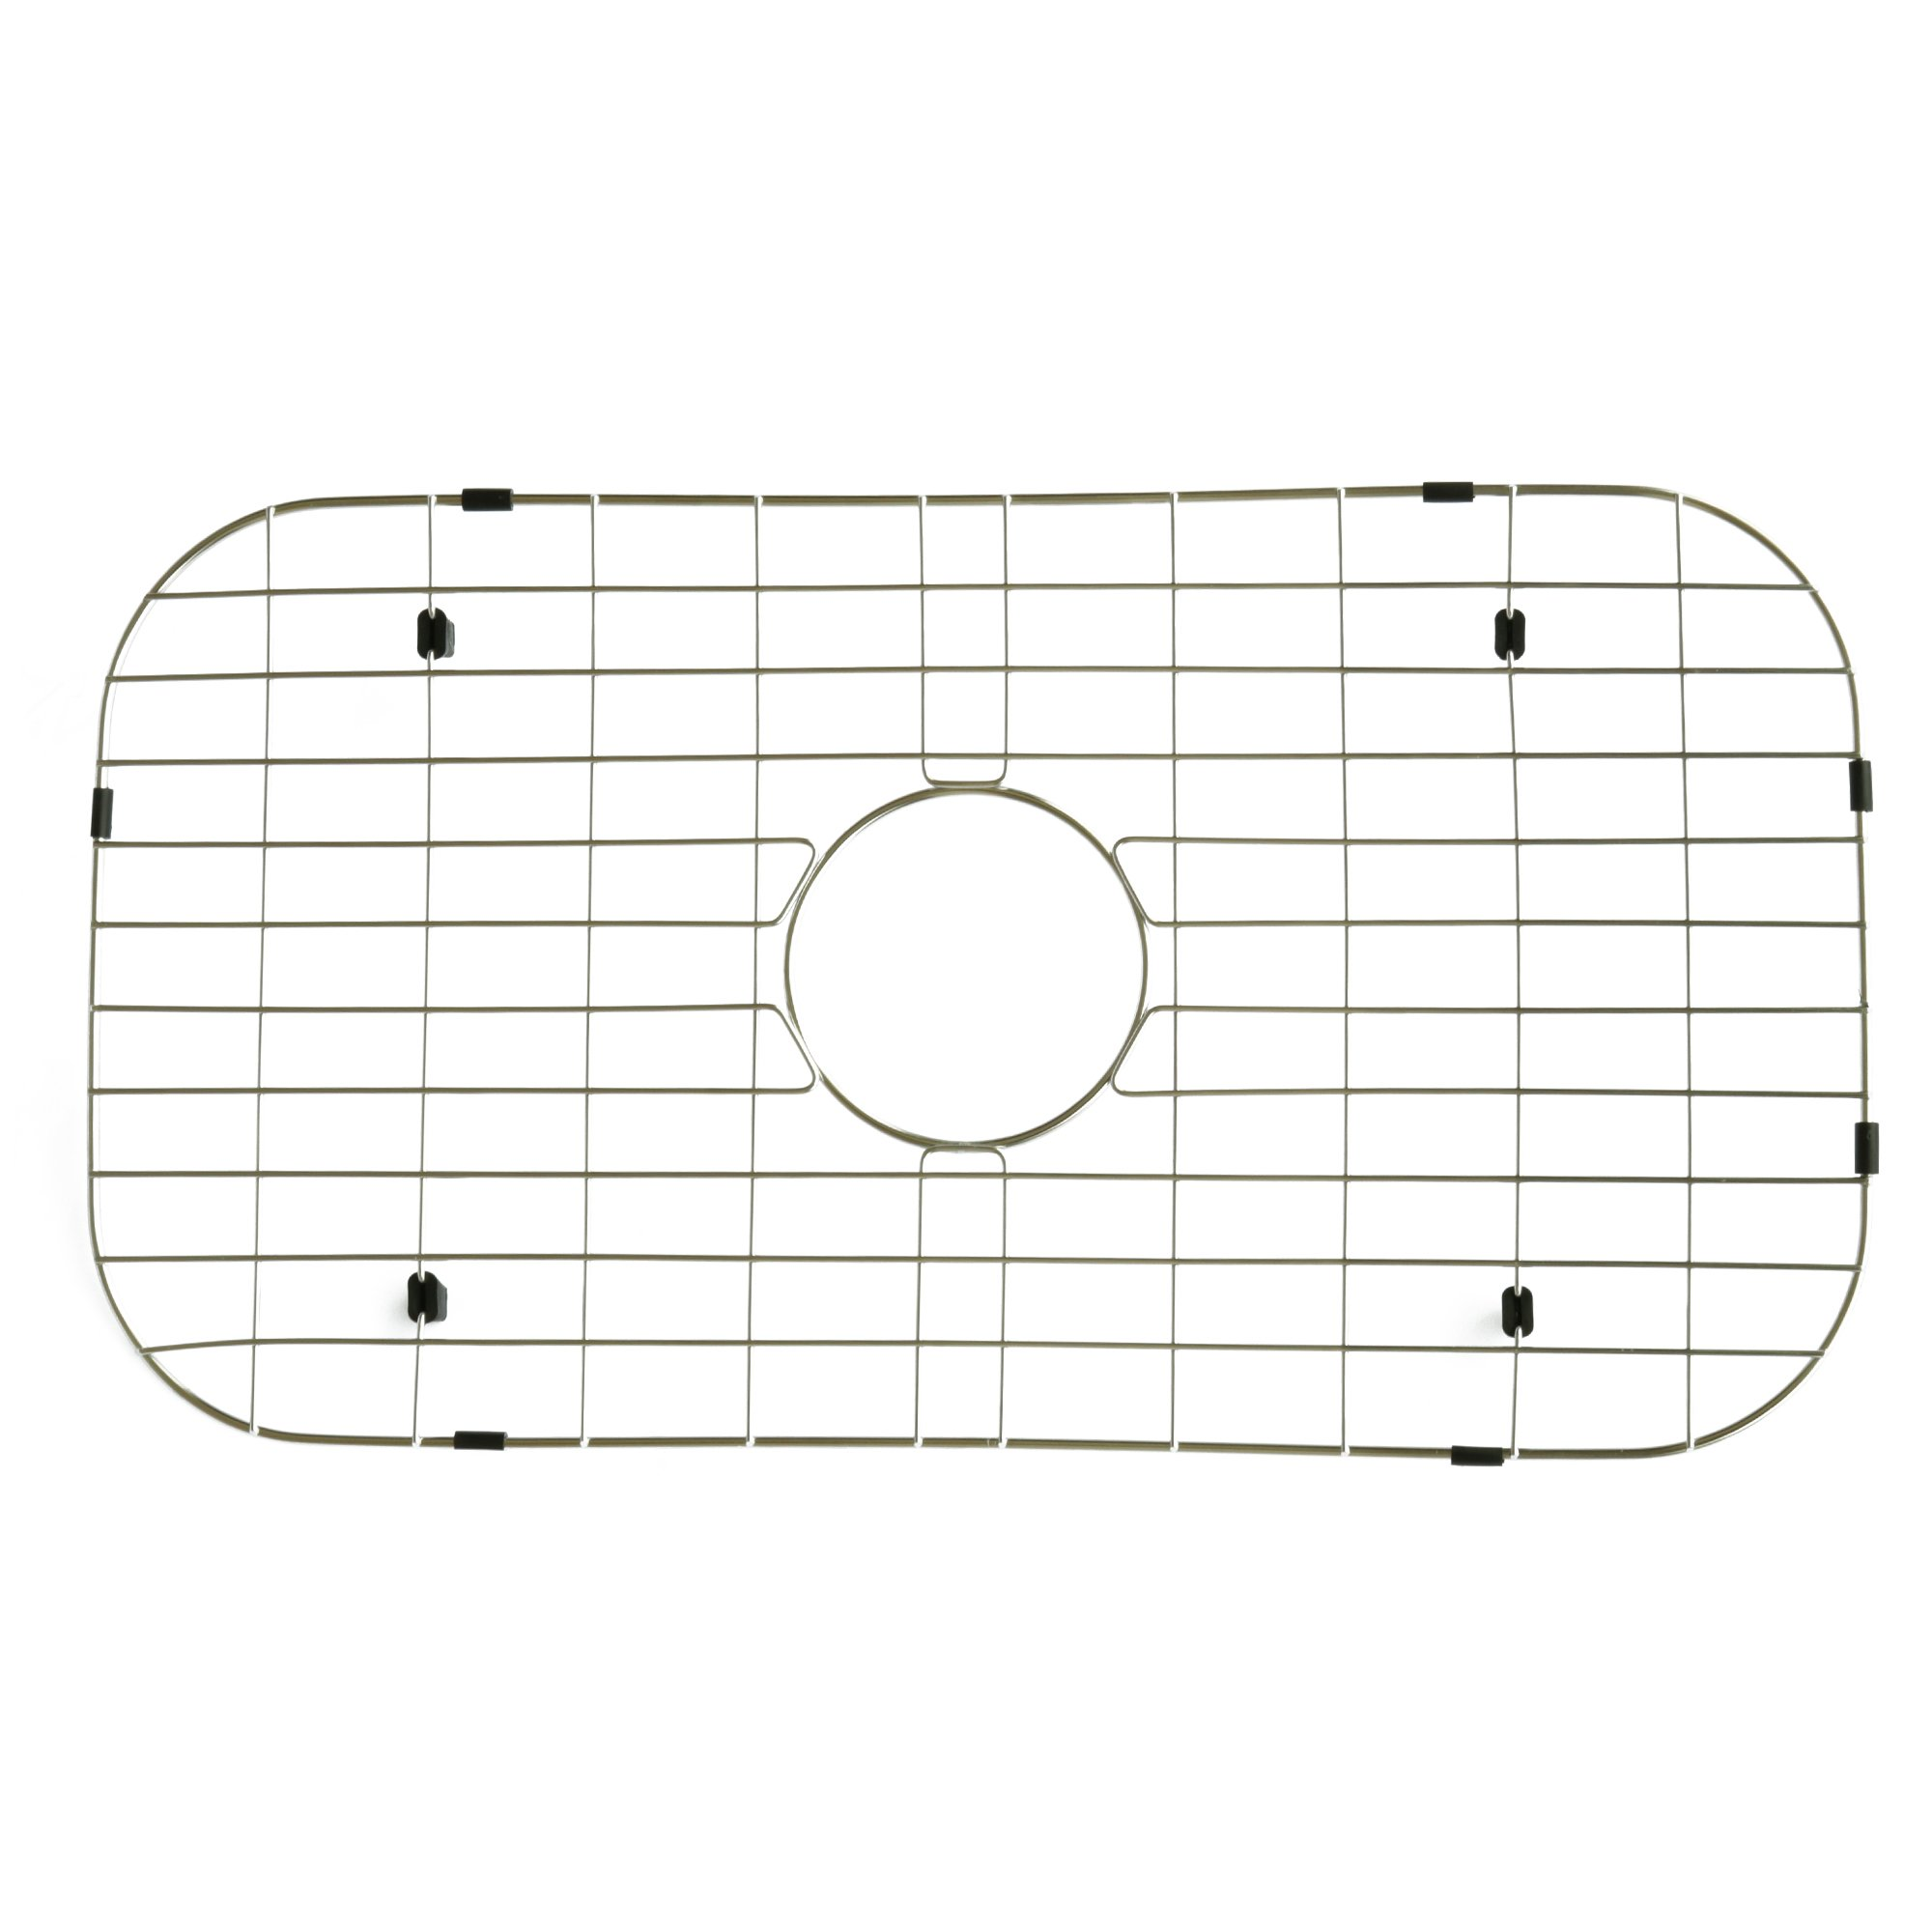 NWC Sink Protector, Metal Grid for Stainless Steel Kitchen Sinks   26 in X 14 in   Best for Protecting Your Sink